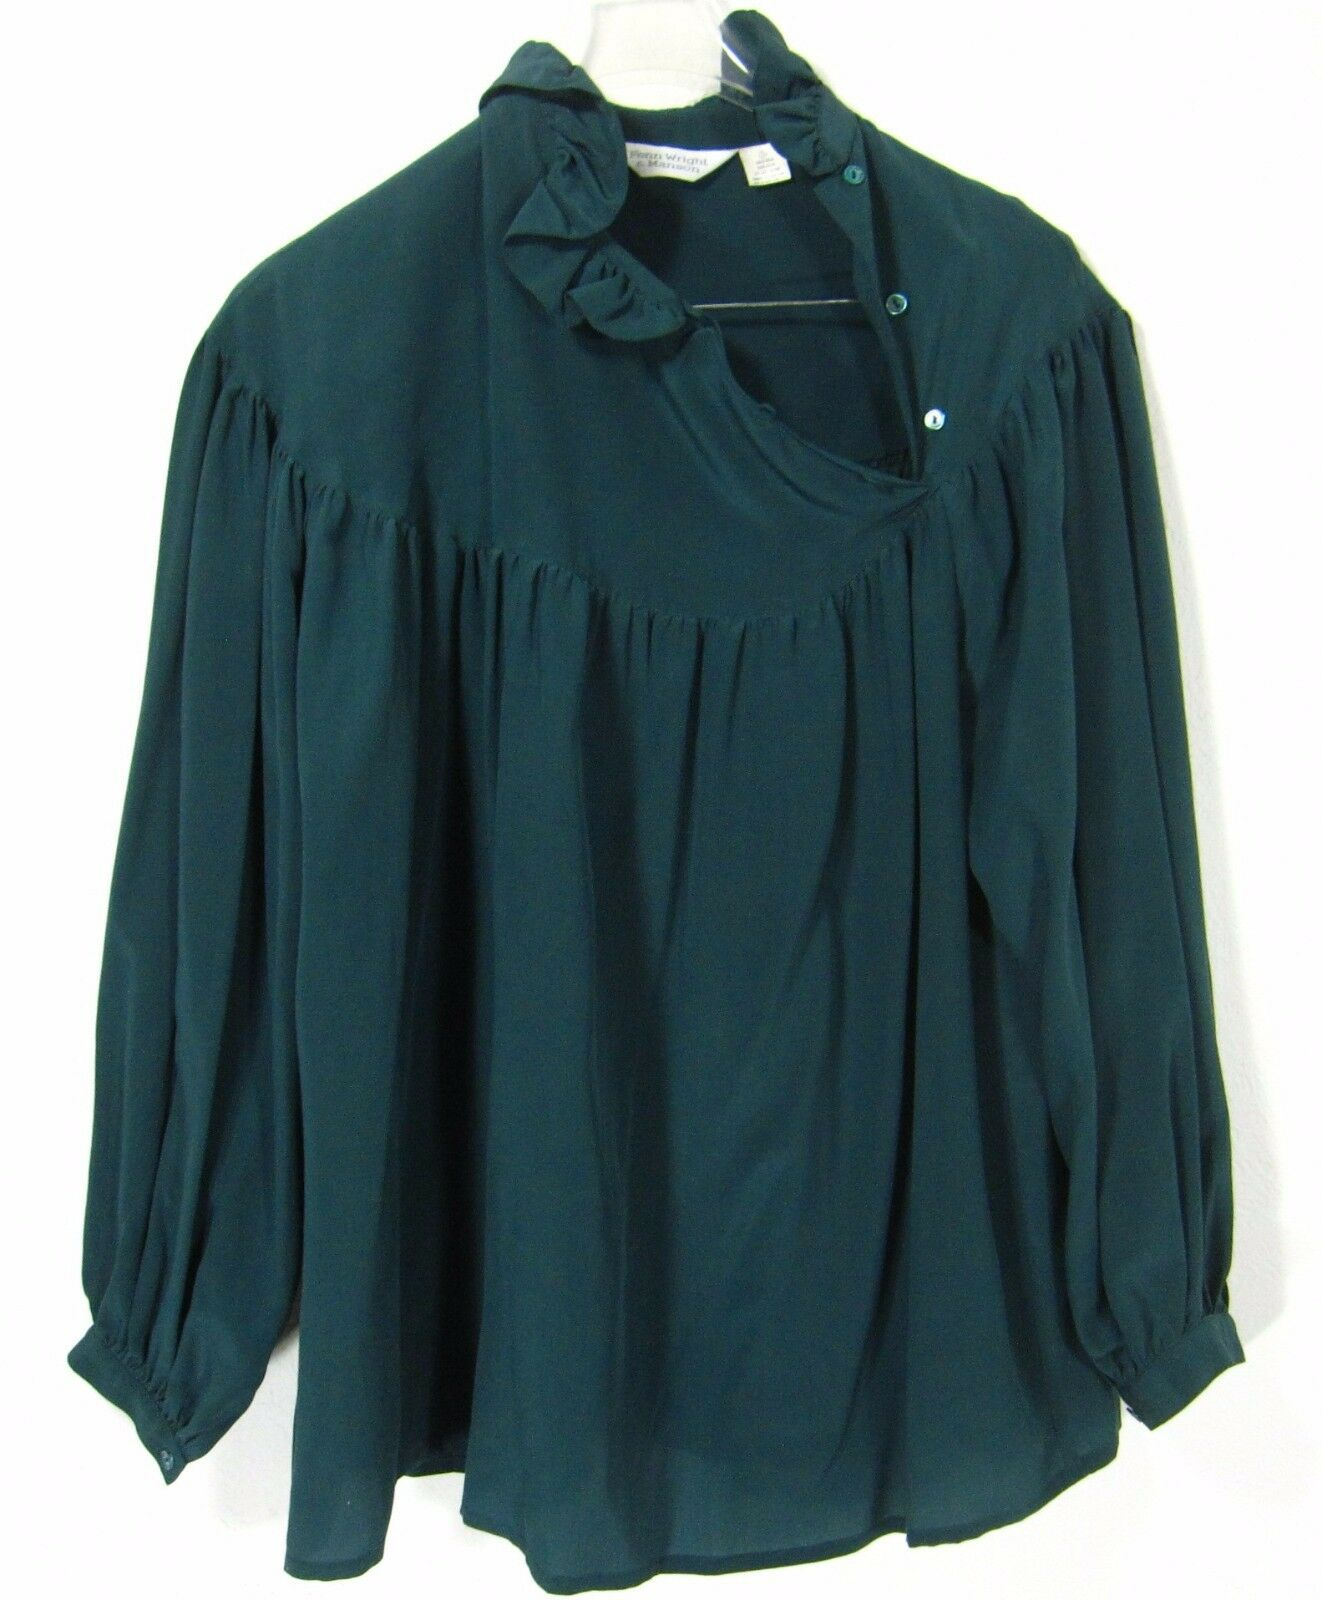 Fenn Wright & Manson 100% Silk Long Sleeve Blouse Size 3 Solid Green Asymmetric